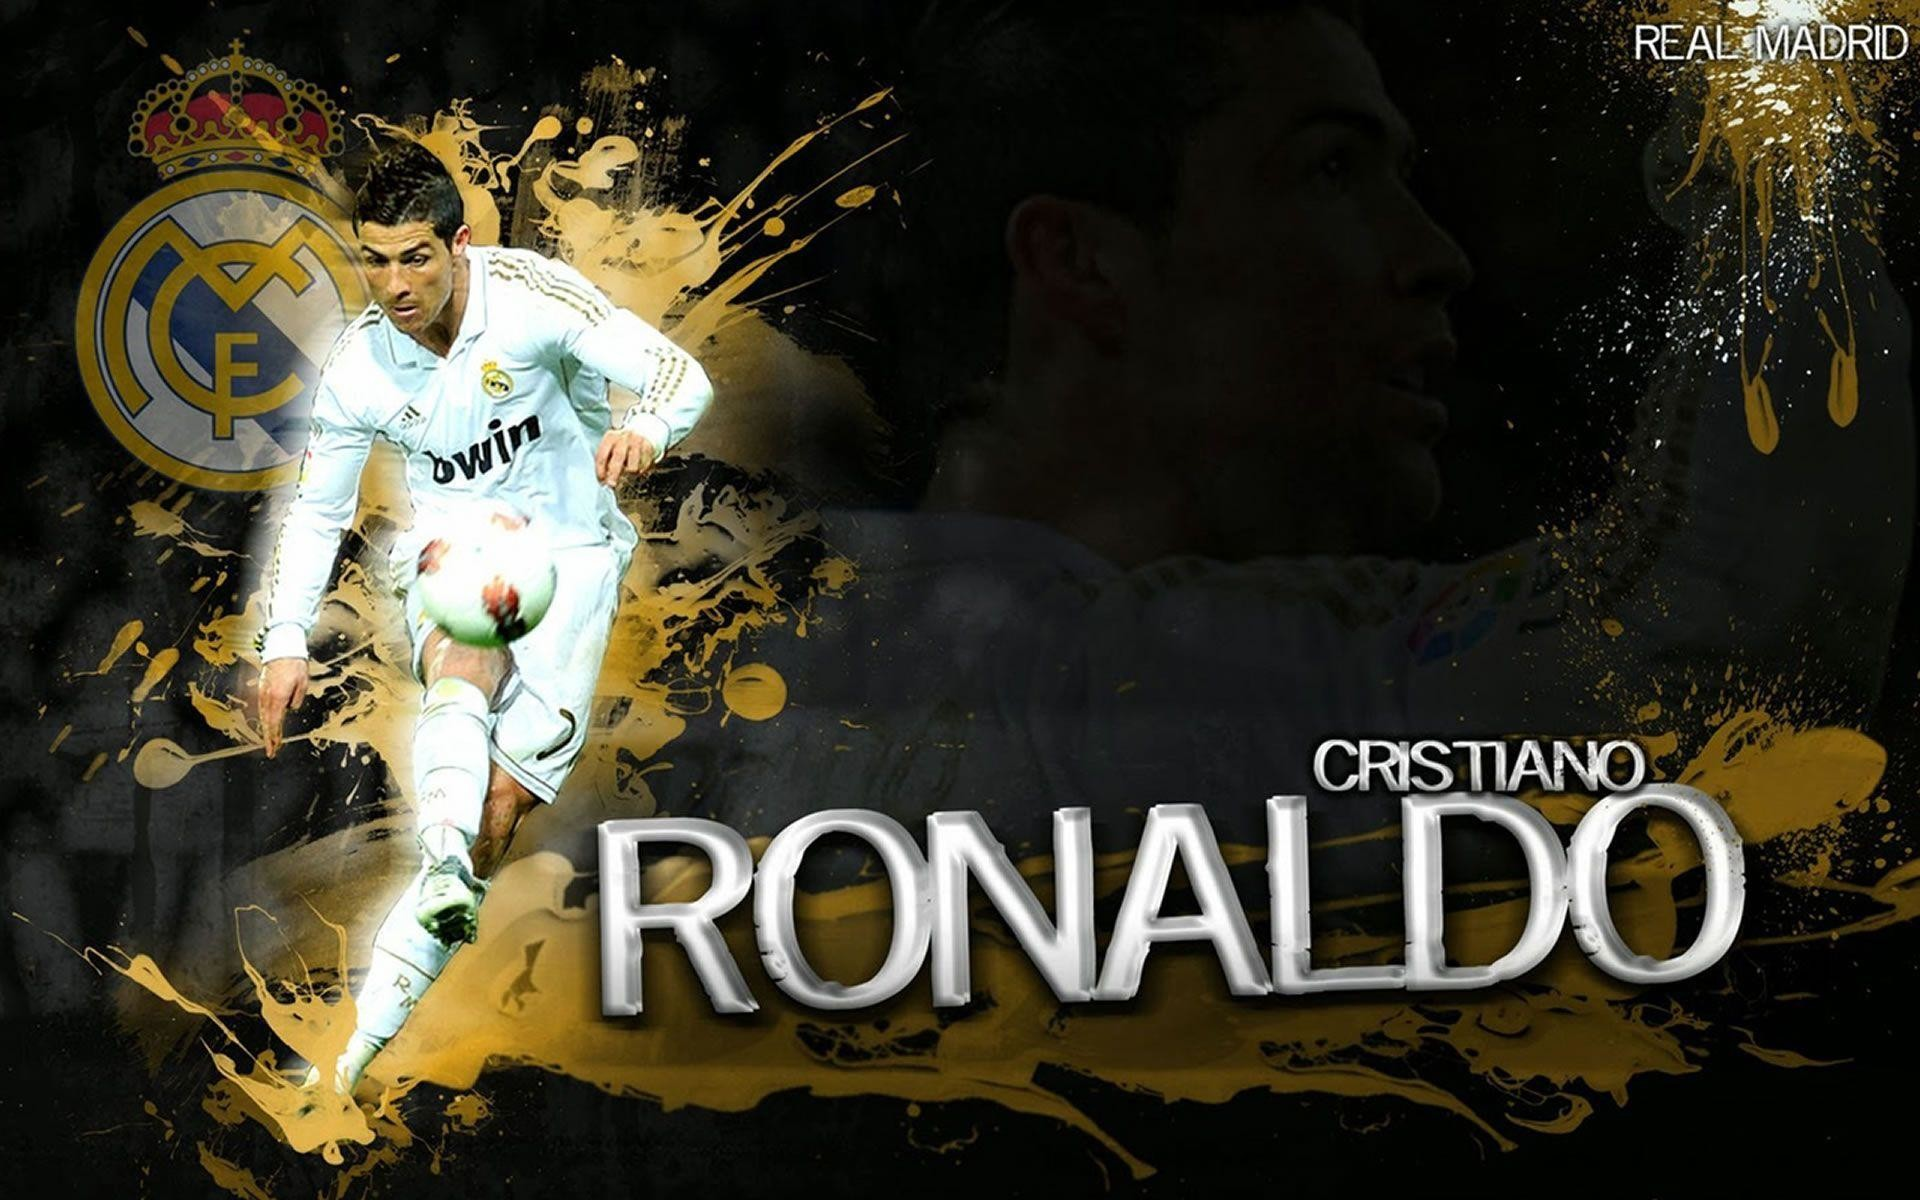 Cristiano ronaldo real madrid wallpaper | Wallpapers, Backgrounds .